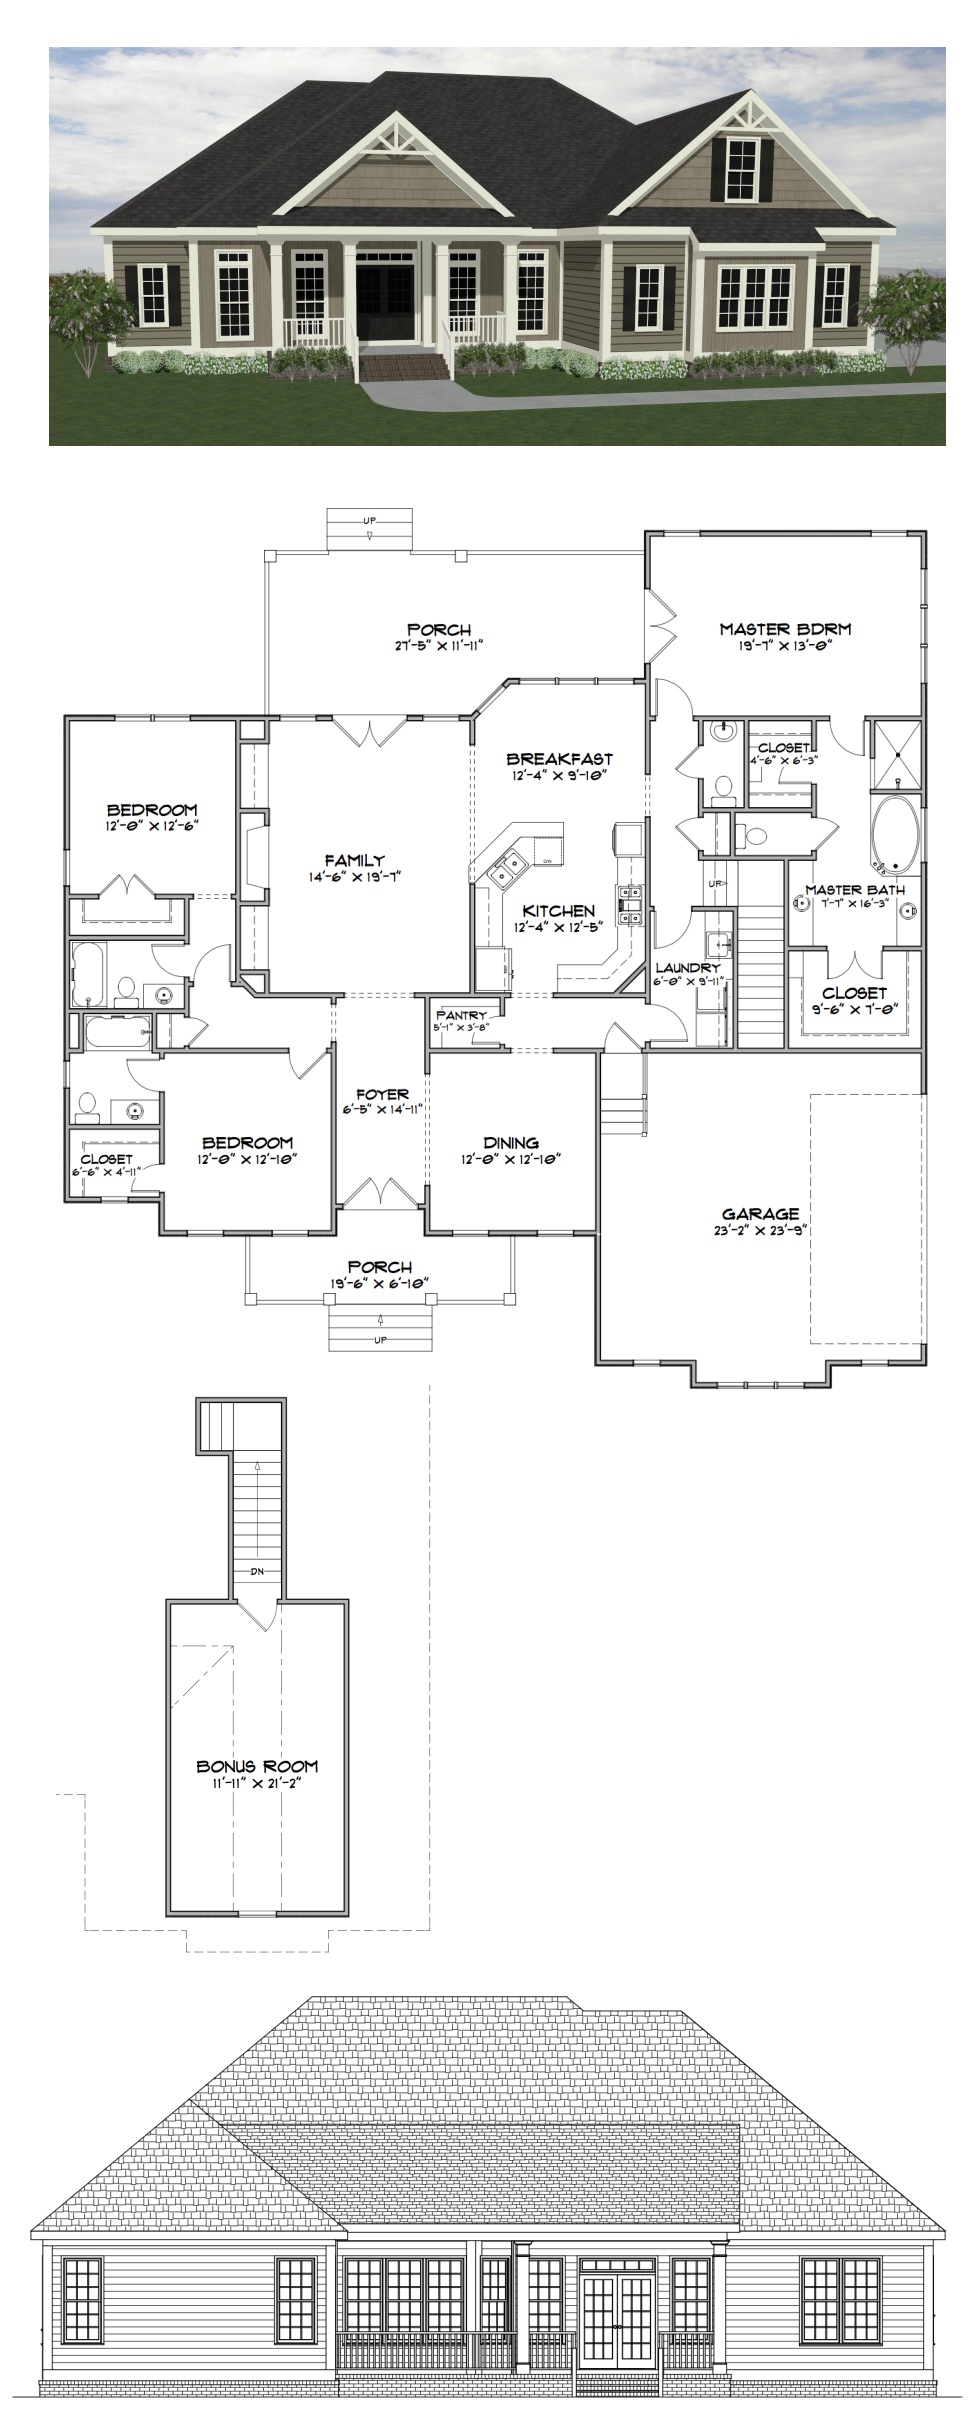 Plan SC 2282: ($770) 3 Bedroom 3.5 Bath Home With 2282 Heated Square Feet  (bonus Room Adds 279 Sf). This Home Plan Is One Of Our Most Popular Designs  And Is ...